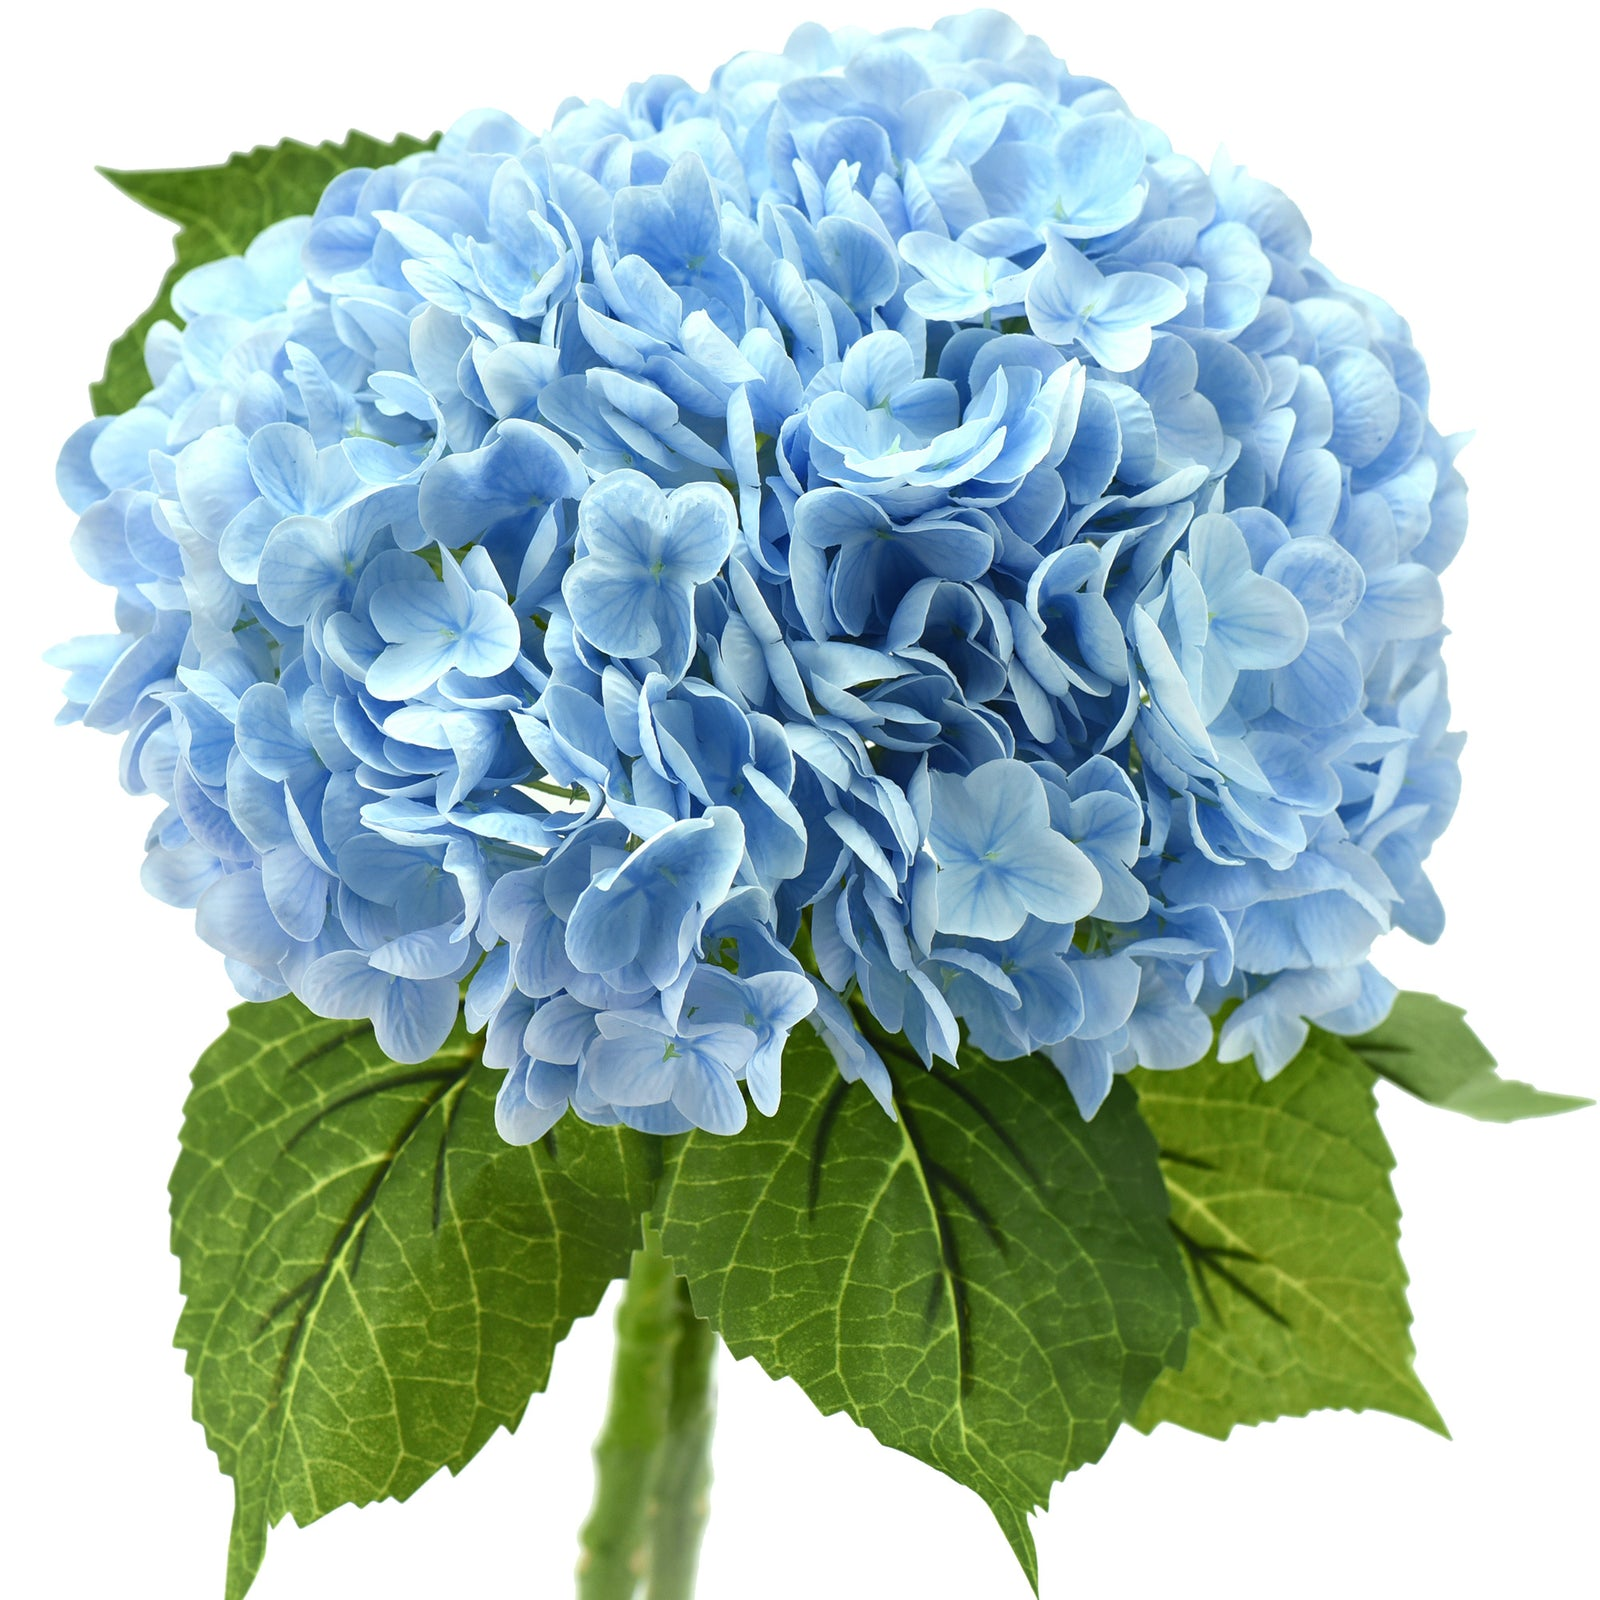 FiveSeasonStuff 2 Stems Real Touch Petals and Leaves Artificial Hydrangea Flowers Long Stem Floral Arrangement | for Wedding Bridal Party Home Décor DIY Floral Decoration (FiveSeasonStuff 2 Stems Real Touch Petals and Leaves Artificial Hydrangea Flowers Long Stem Floral Arrangement | for Wedding Bridal Party Home Décor DIY Floral Decoration (blue)